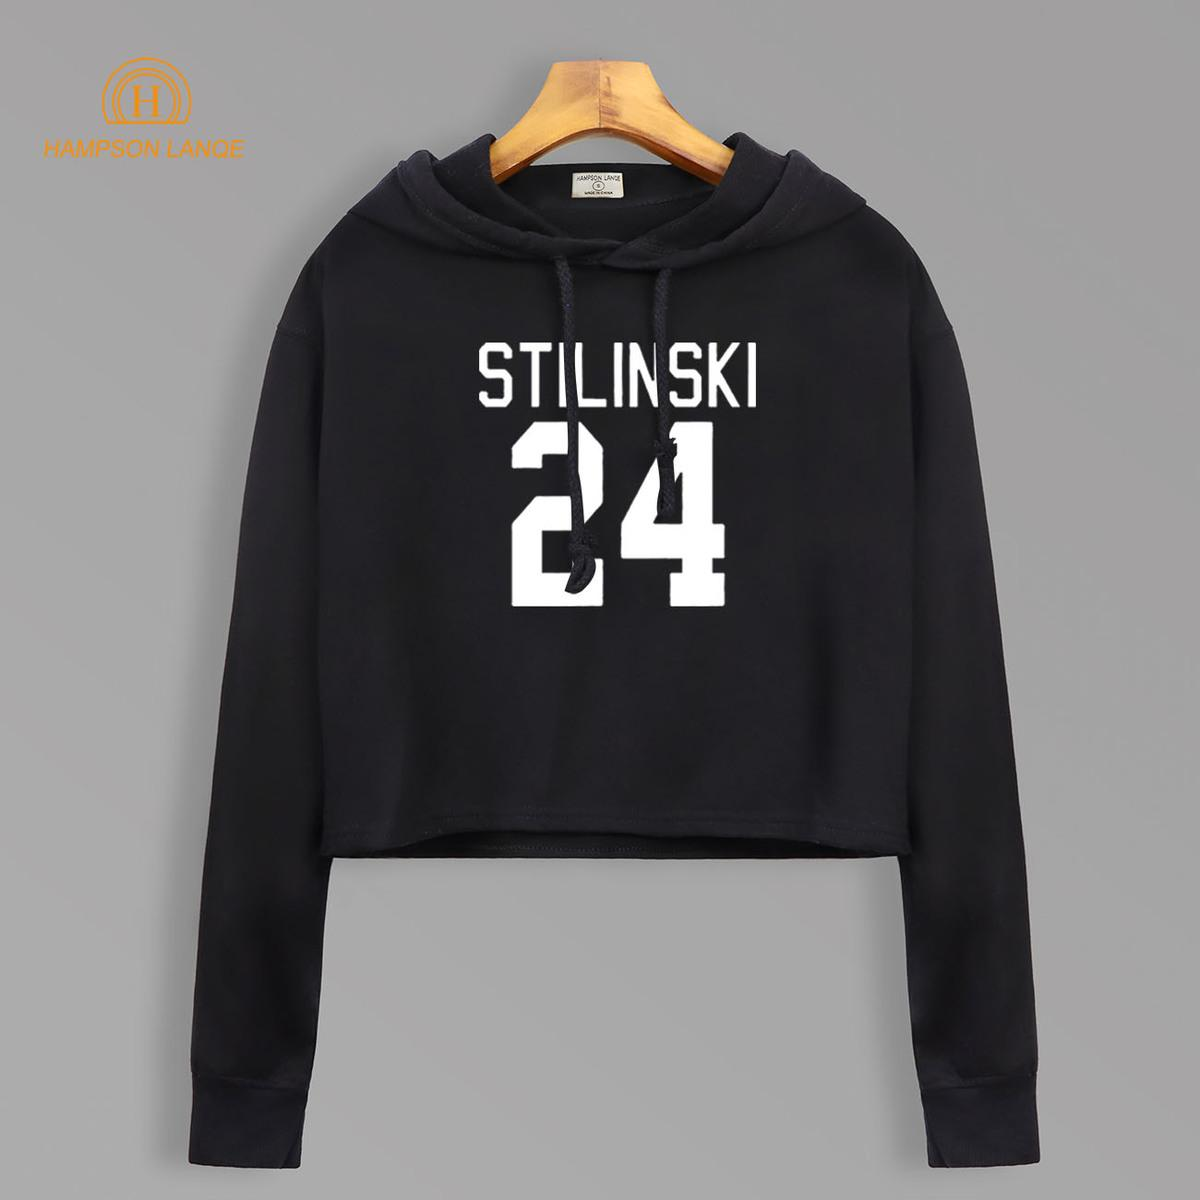 2019 Teen Wolf Stilinski 24 Hot Sale Autumn 2018 Cropped Hoodie Women  Harajuku Kawaii Crop Tops Short Style Sexy Hoodies Sweatshirts D18103001  From Xiao0002 ... 444818f32918